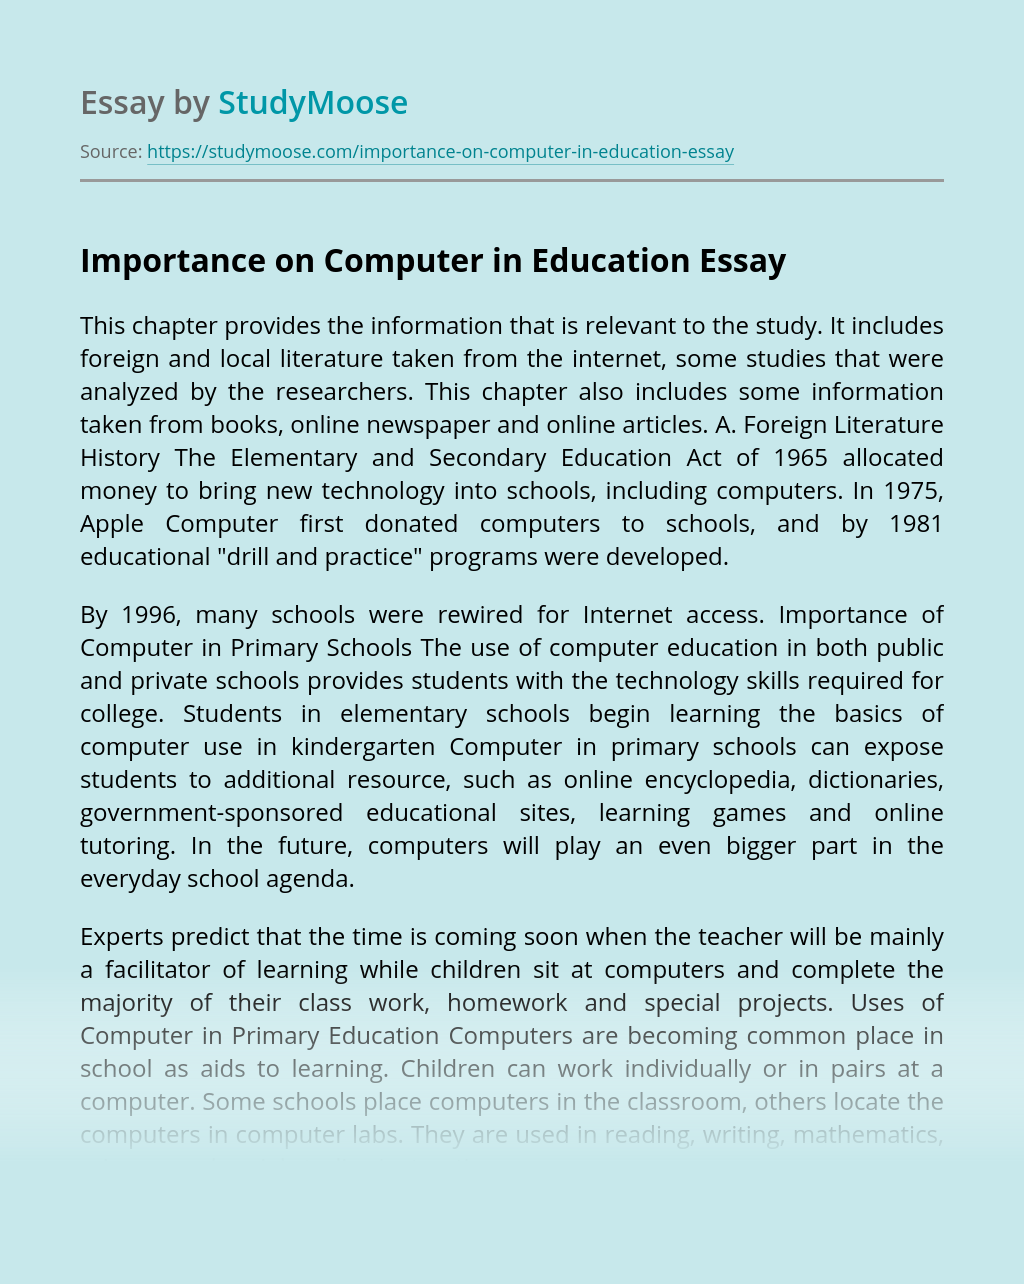 Importance on Computer in Education